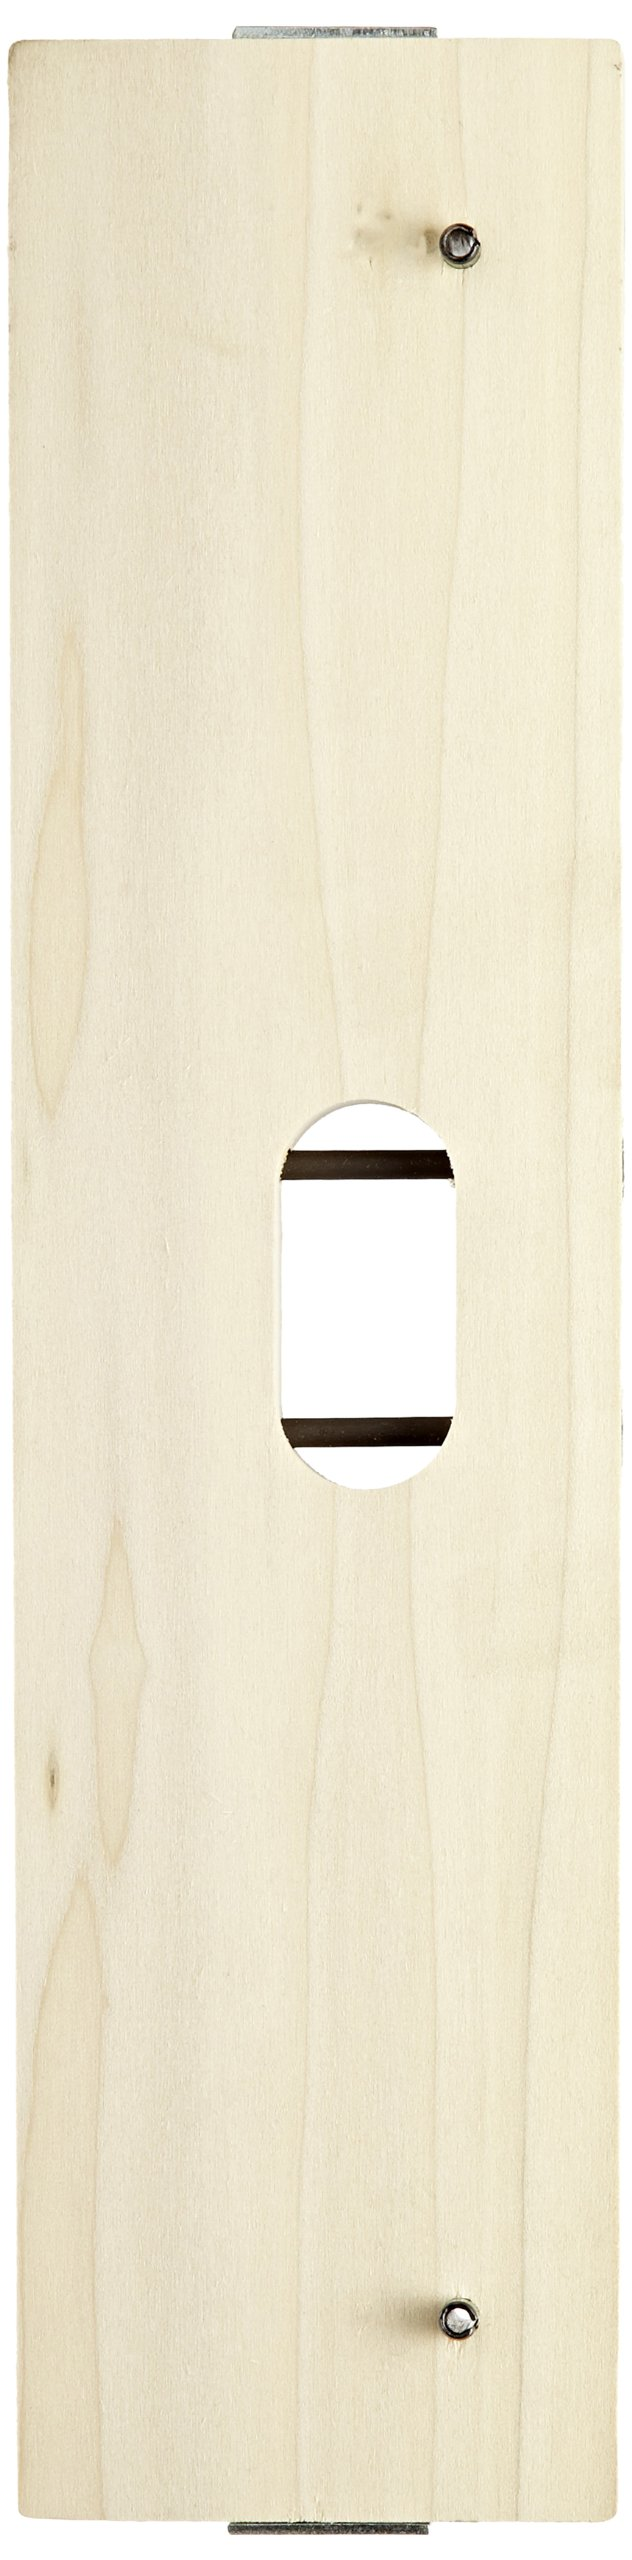 SOSS Wood Router Guide Template for #204 Invisible Hinges, 3/8'' Bit